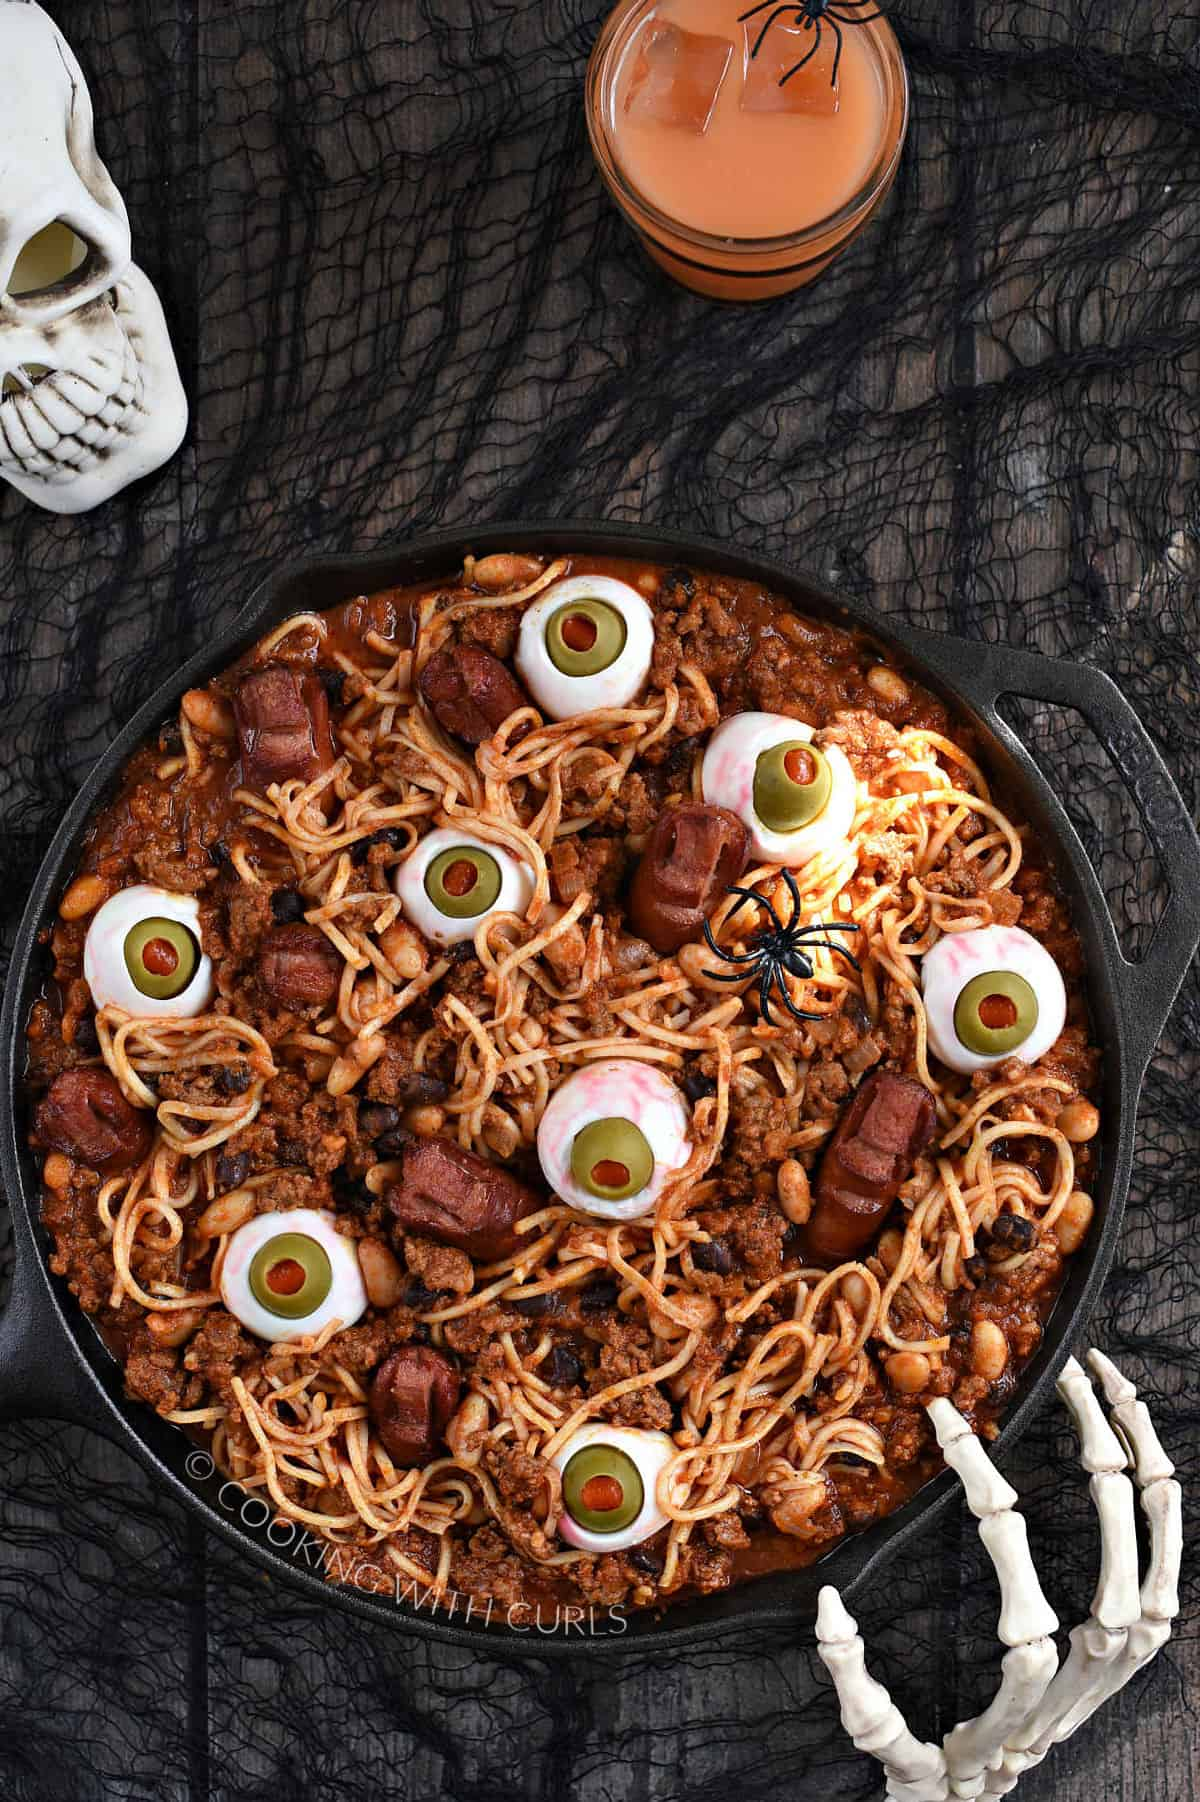 Looking down on a cast iron skillet filled with Chili with noodles, beans, egg eyes, and hot dog fingers and toes.